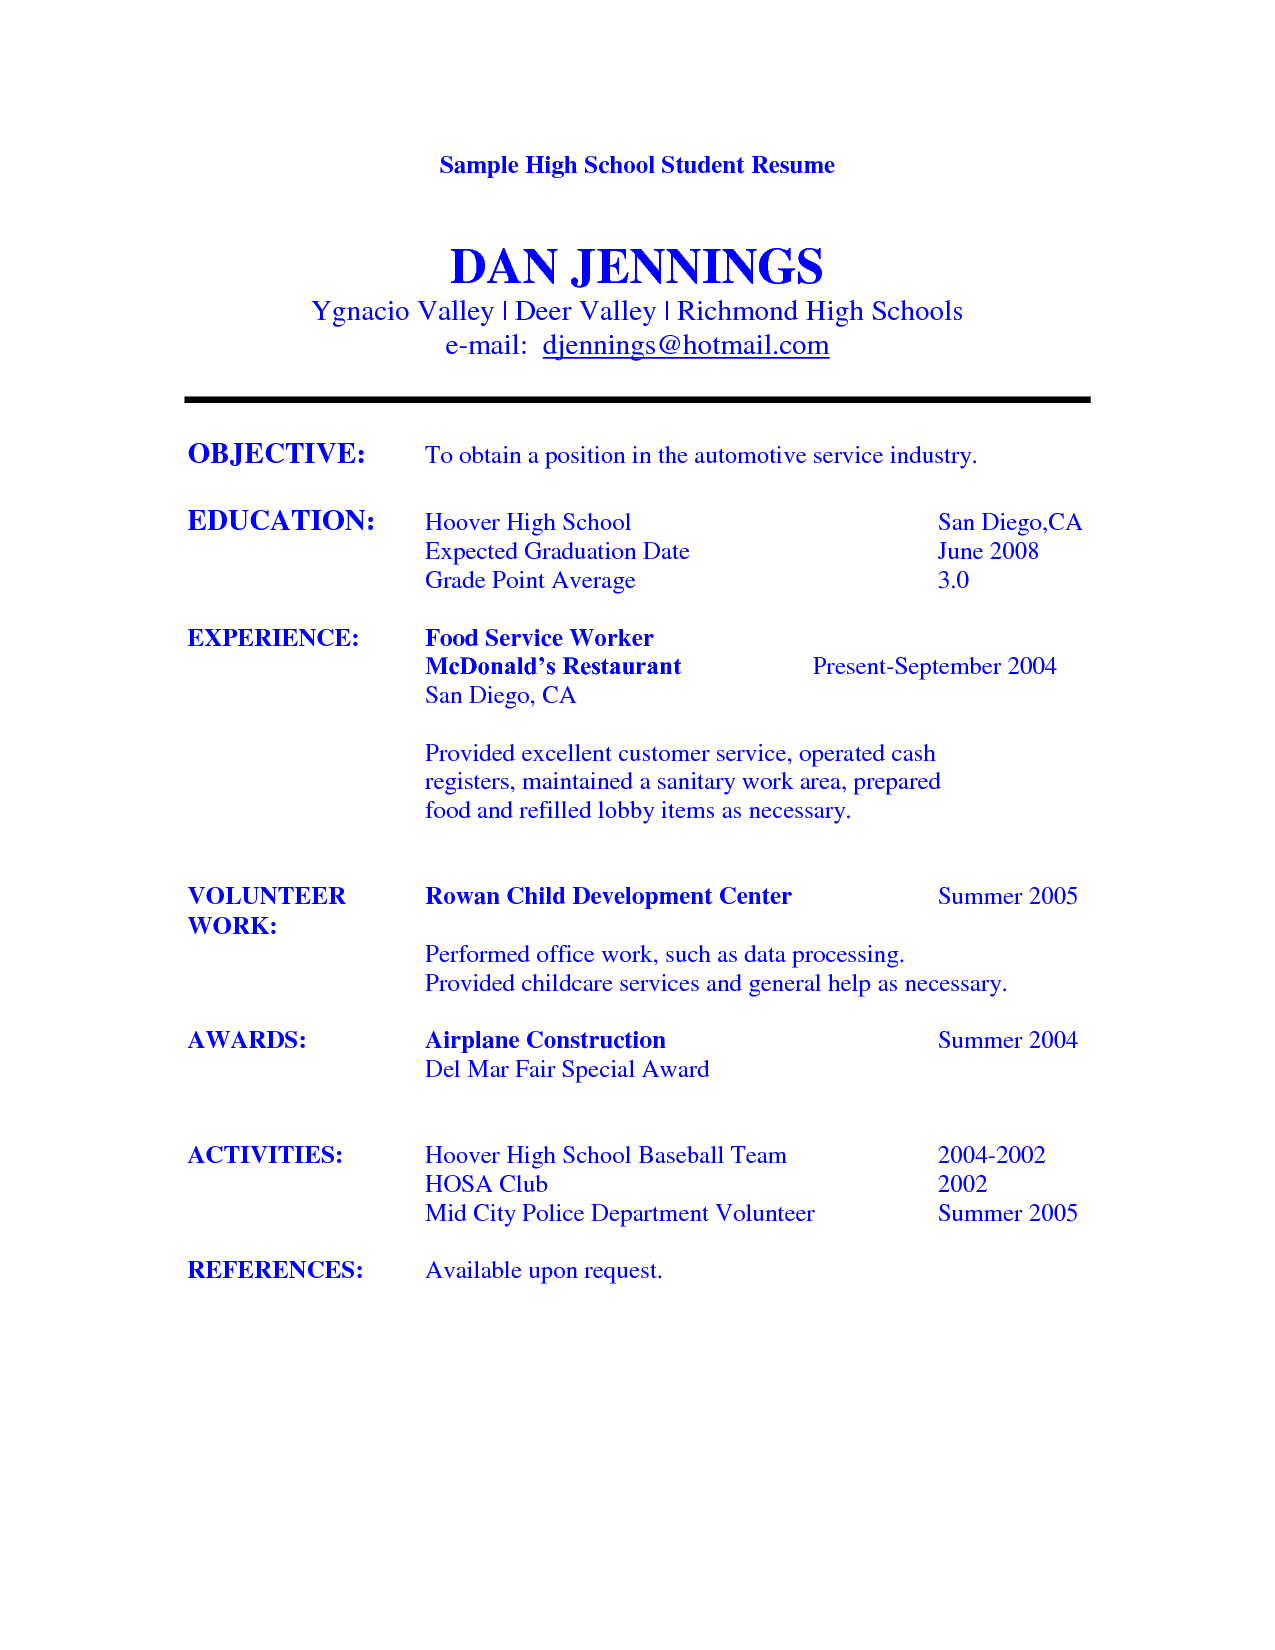 High School Resume Objective 12751650 resume examples resume objectives for high school students resume Sample Resume Objective For College Student Httpwwwresumecareerinfosample Resume Objective For College Student 4 Pinterest High School Resume